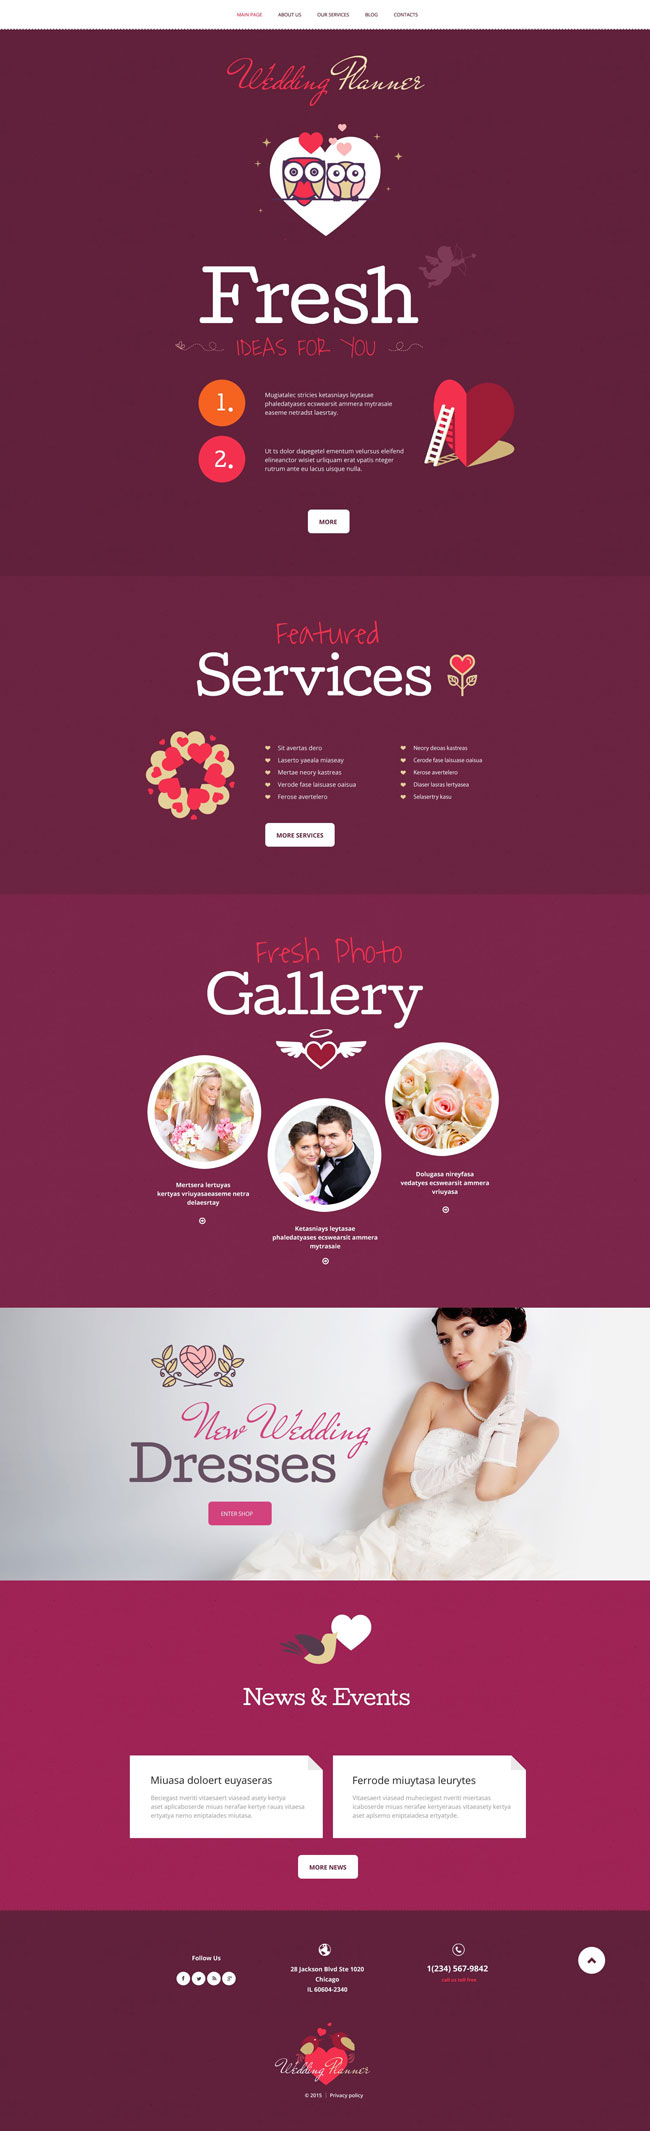 Wedding-Planner-WordPress-Theme